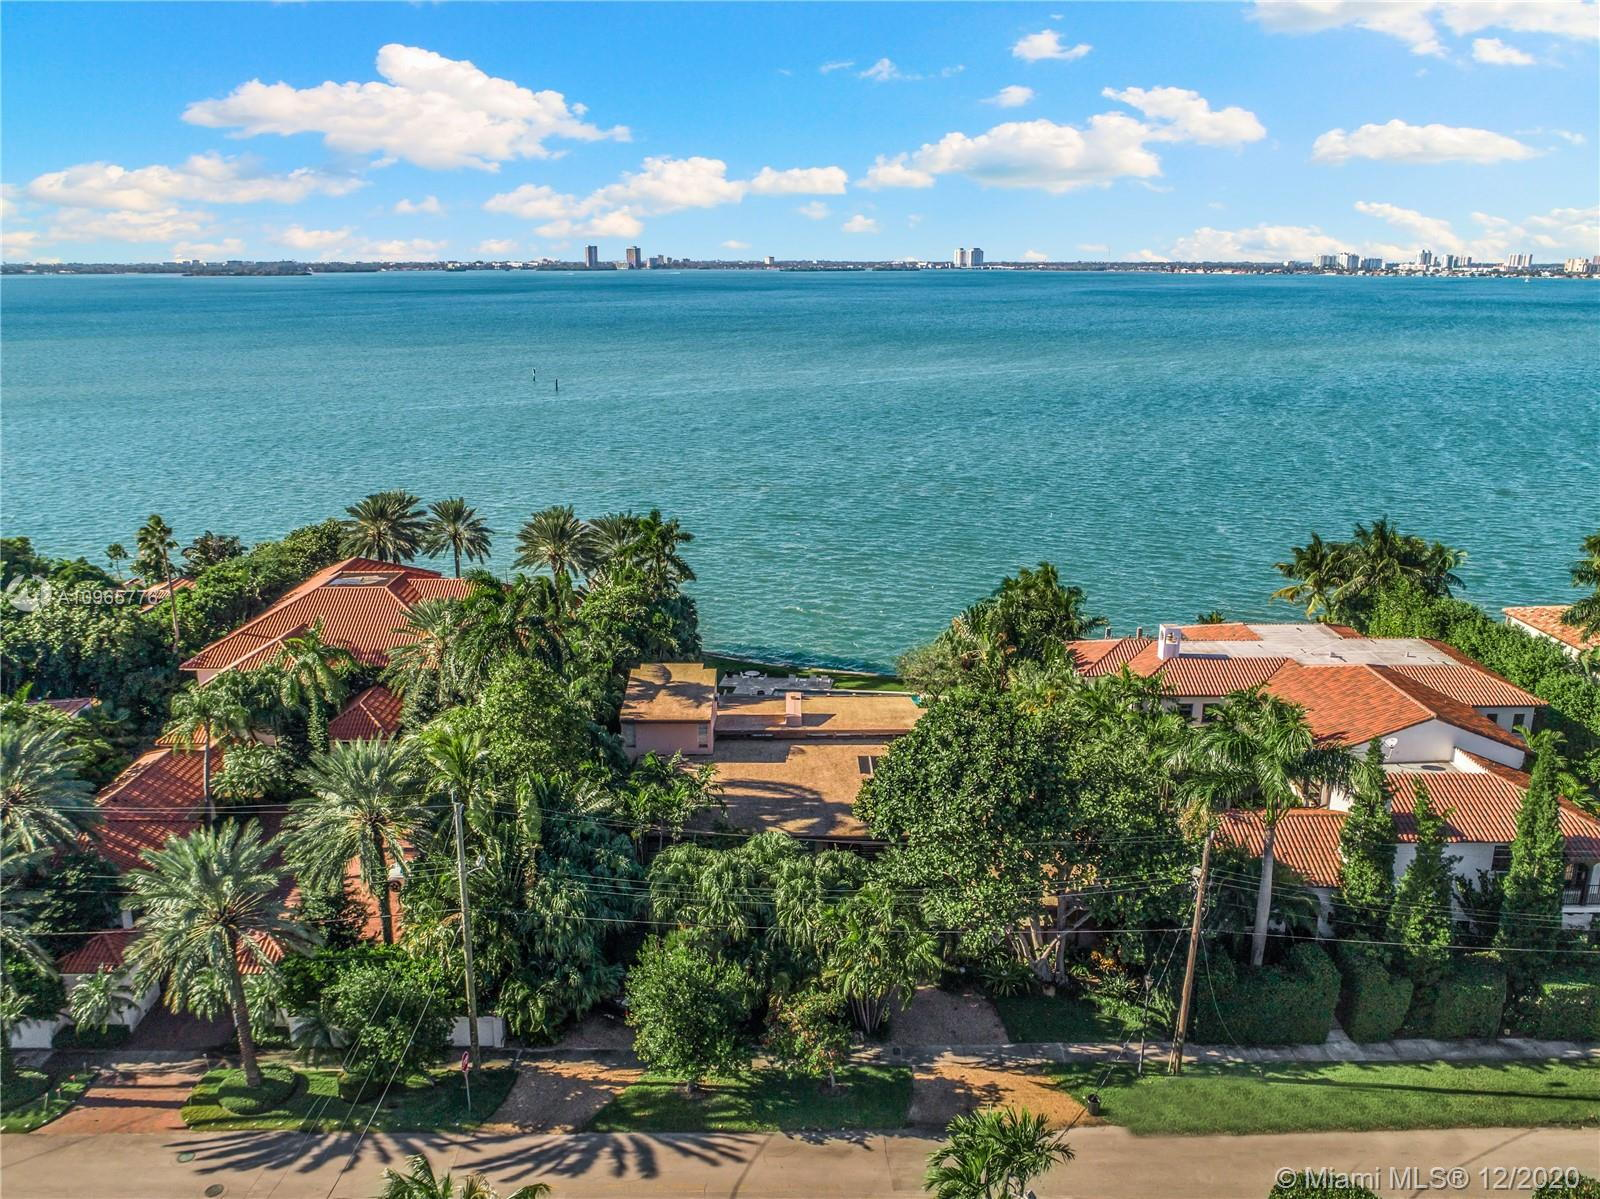 Aerial view of supermodel Cindy Crawford's new Miami mansion, located in the city's uber-exclusive North Bay Road.